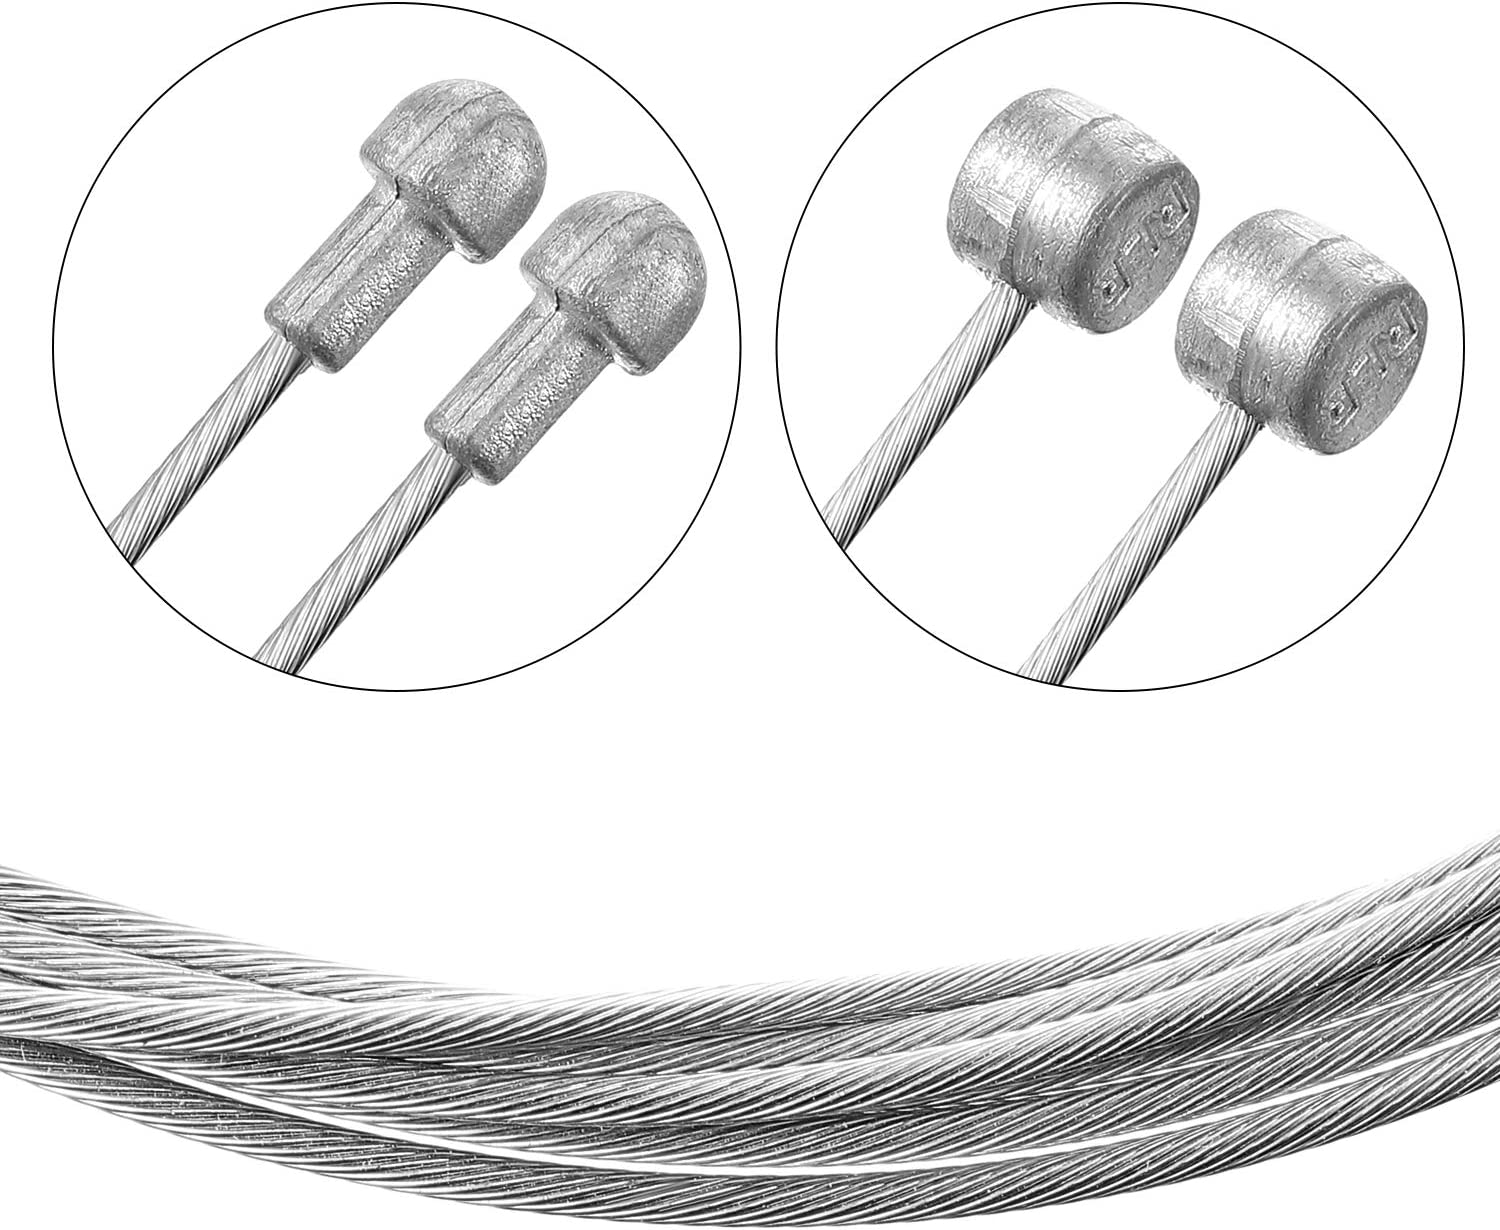 Bike Brake Cable Housing Kit Cycling Bicycle Brake Line Wire Cap Rotating S-Hook End Cap for Mountain and Road